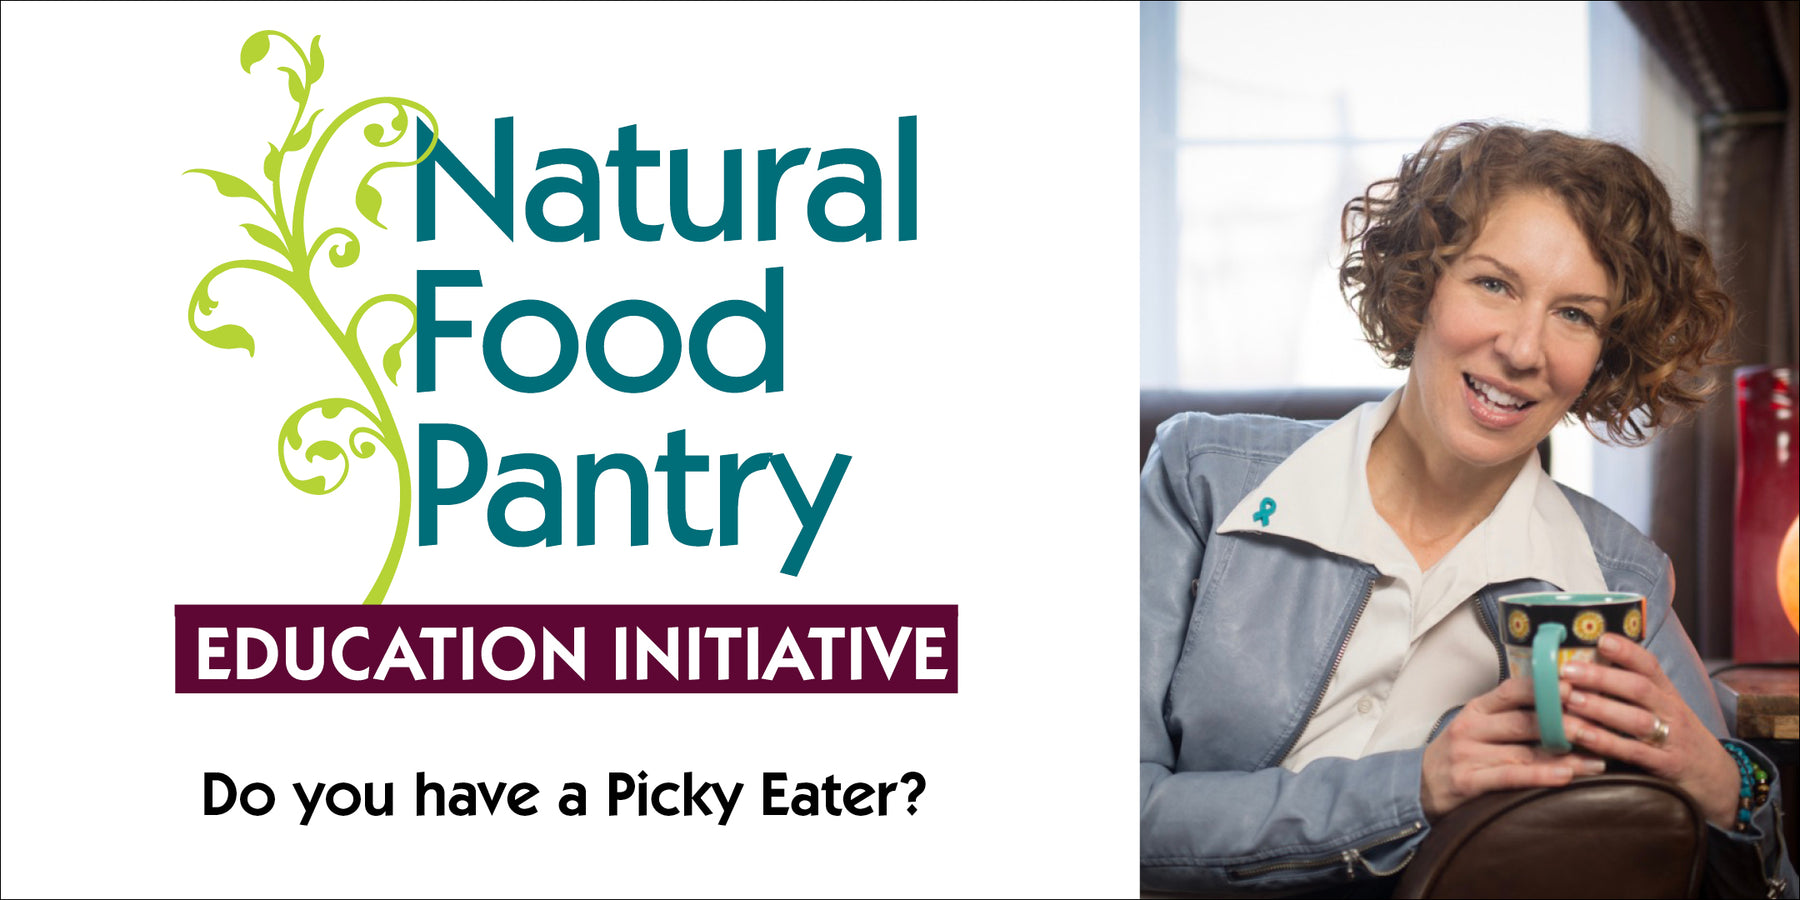 May 2: Do you have a Picky Eater?